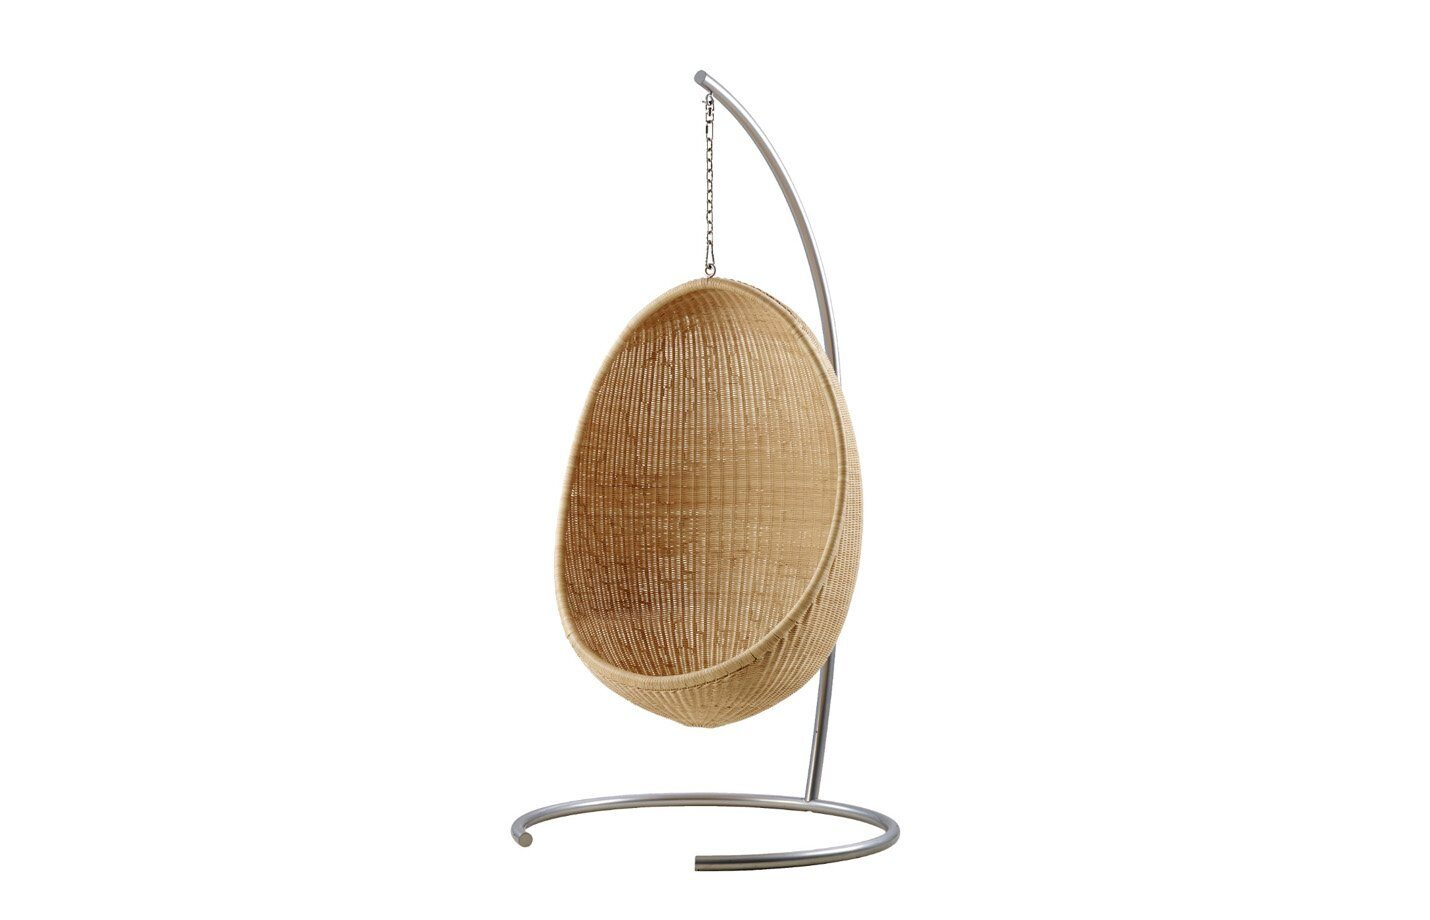 Hanging-Egg-Chair-with-stand-rattan-interior-fabiia